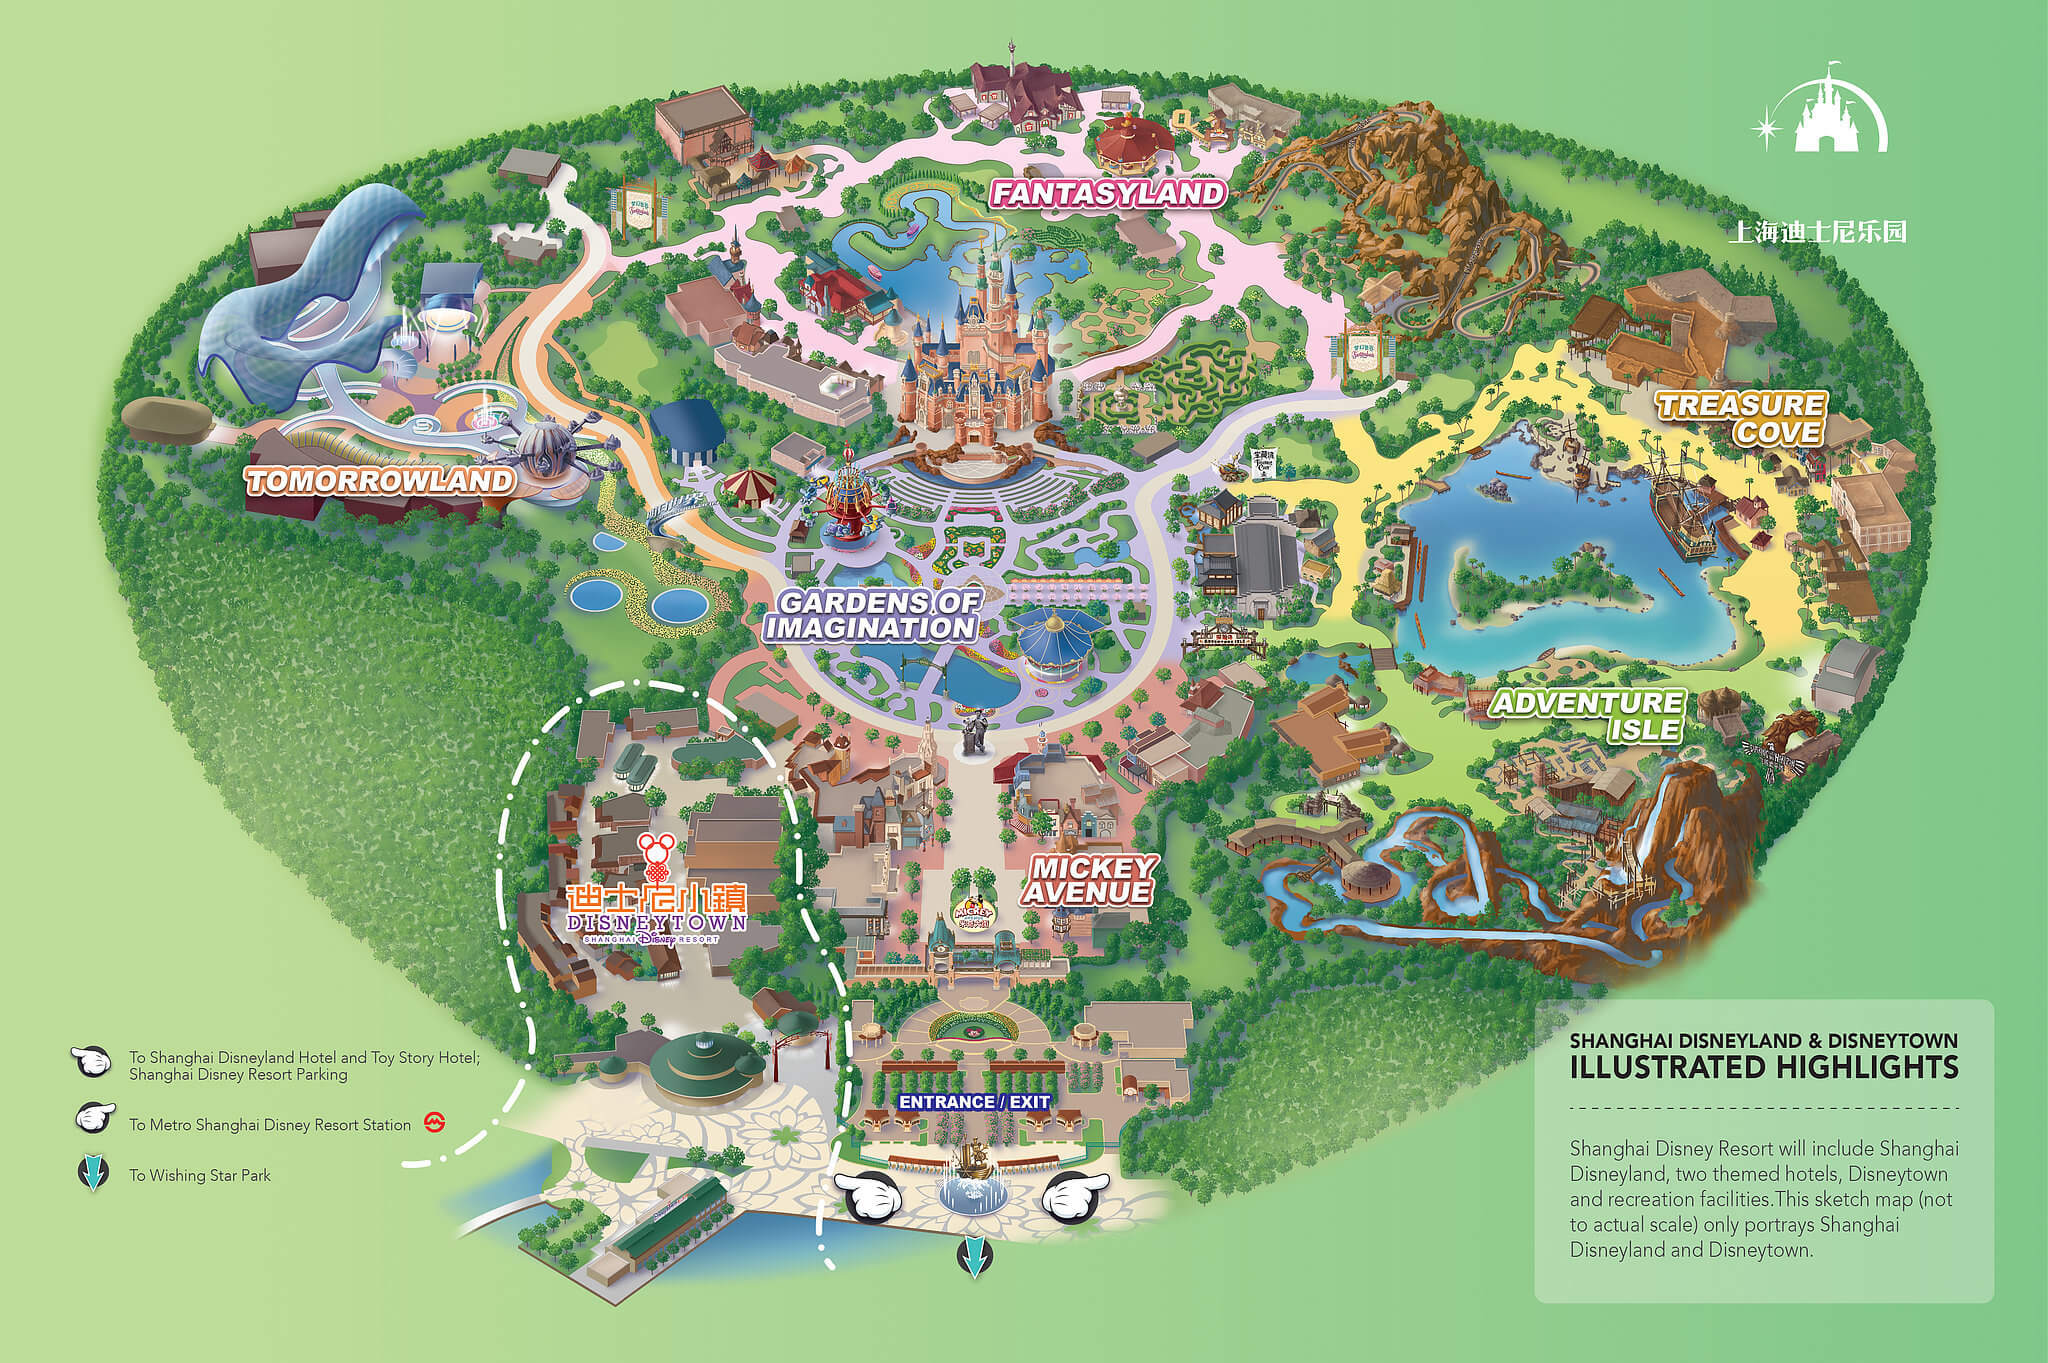 Shanghai Disney Resort tourist map